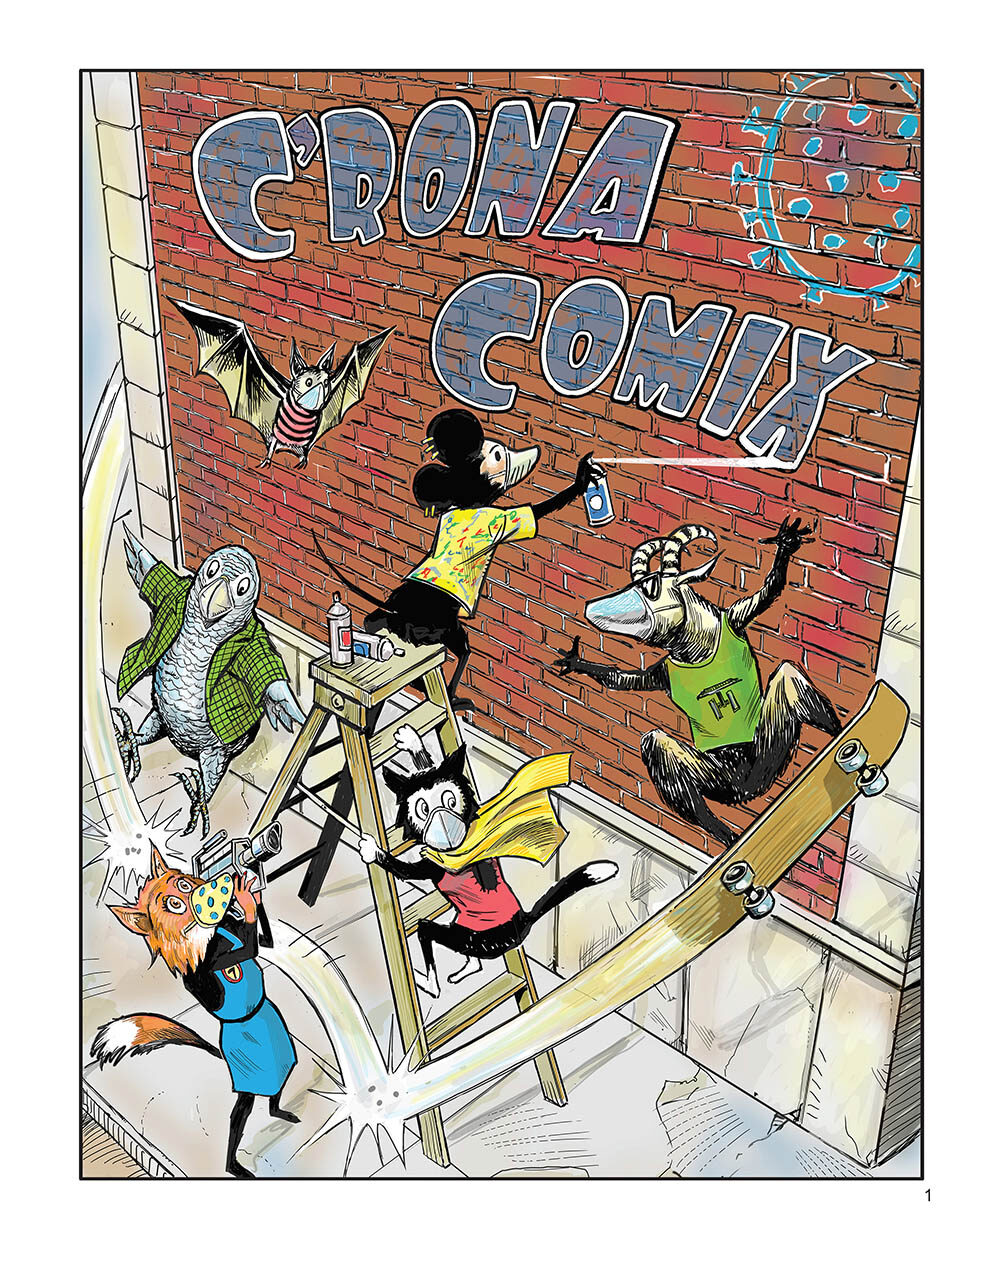 """Colorful illustration depicts the character Graffiti mouse, who is standing on a ladder and spray painting the title """"C'RONA COMIX"""" on a brick wall. Graffiti Mouse is surrounded by Bat, Professor Grey, Reporter Fox, and Cat, who is climbing the ladder after Graffiti Mouse. Skate Goat is skating by the scene on a tan skateboard."""